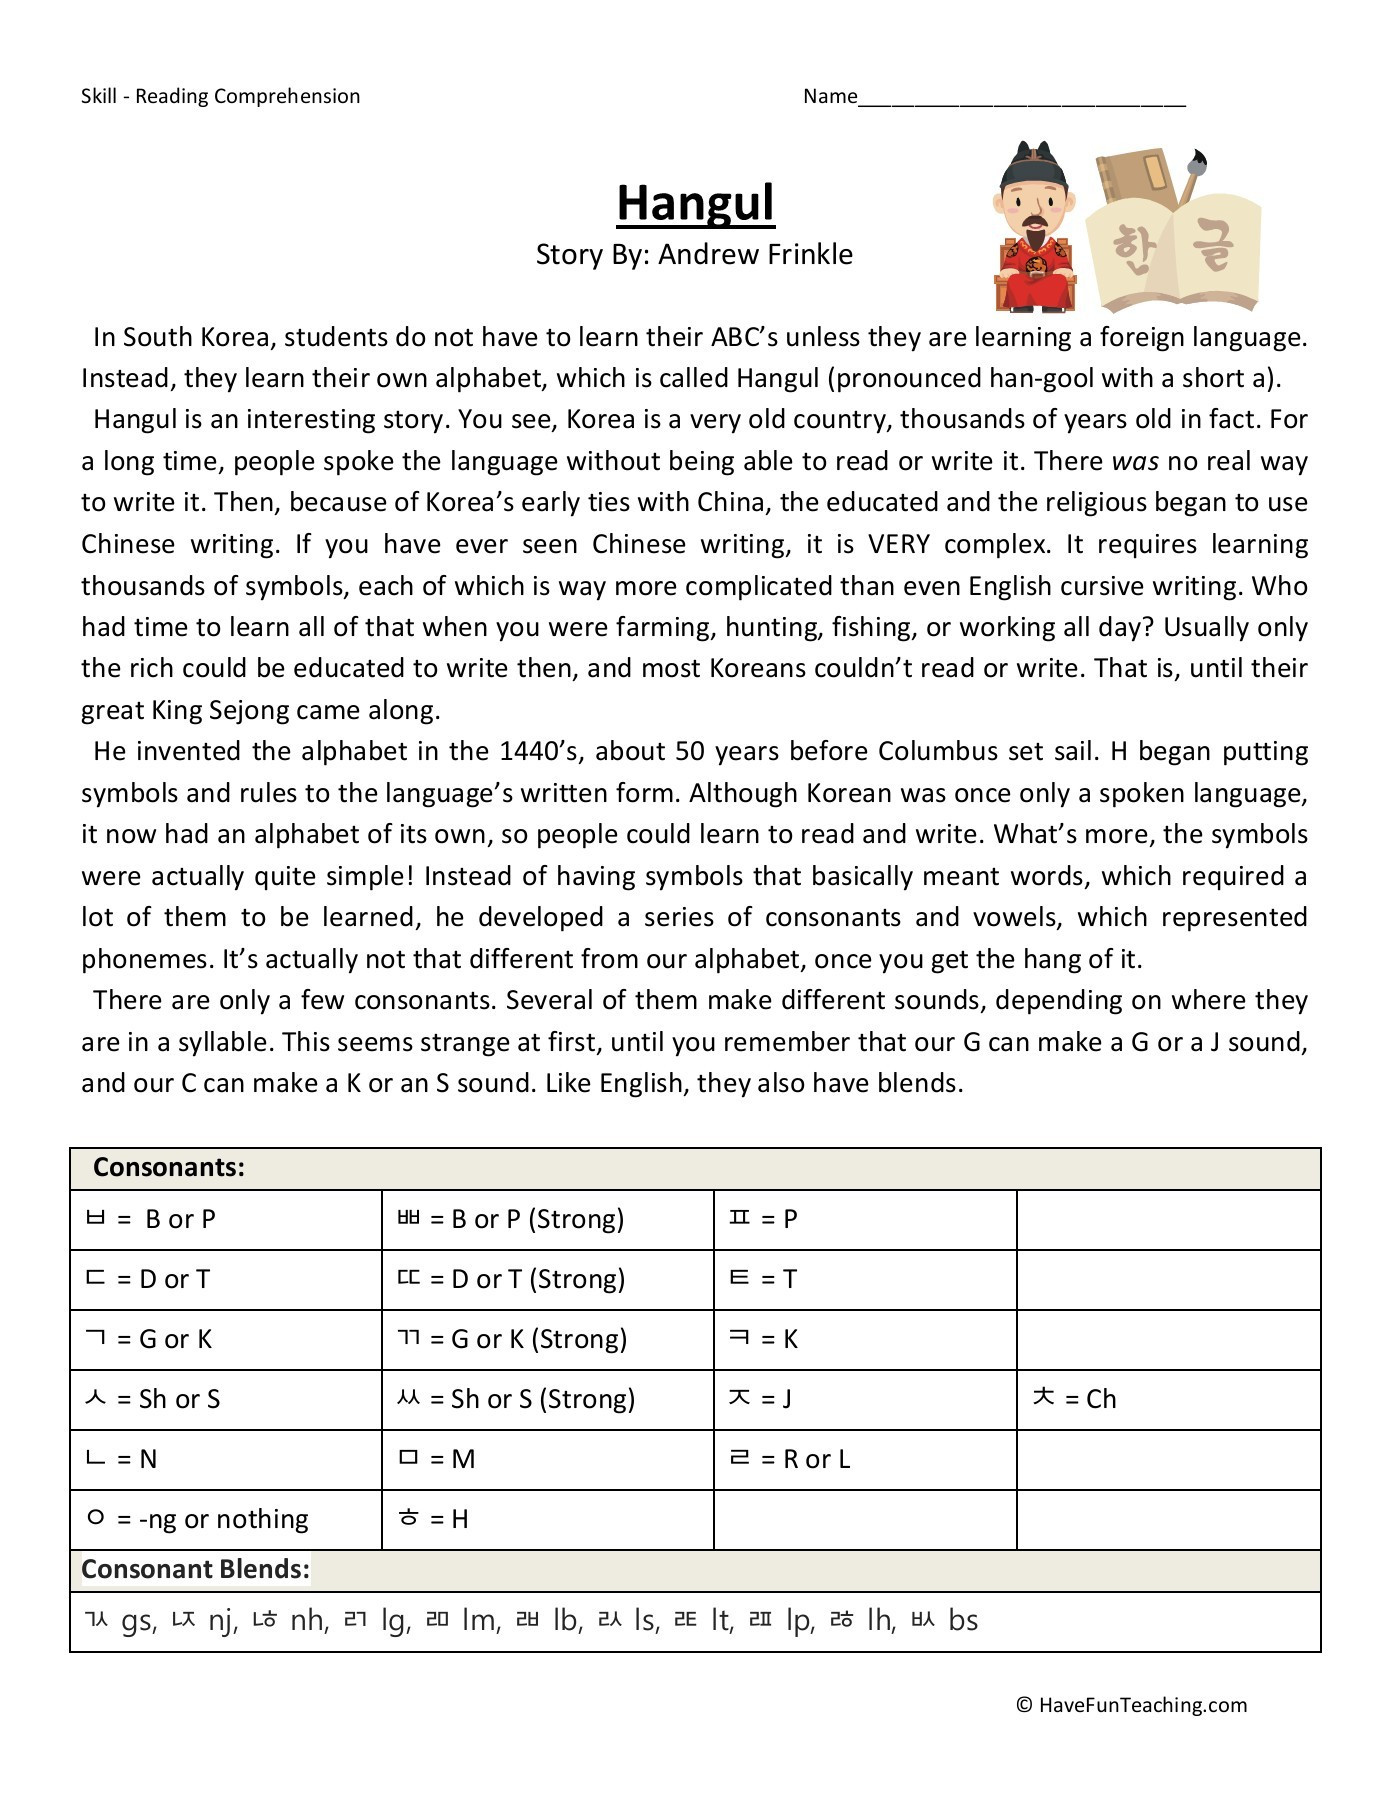 Reading Comprehension Worksheets 6th Grade Hangul Sixth Grade Reading Prehension Worksheet Pages 1